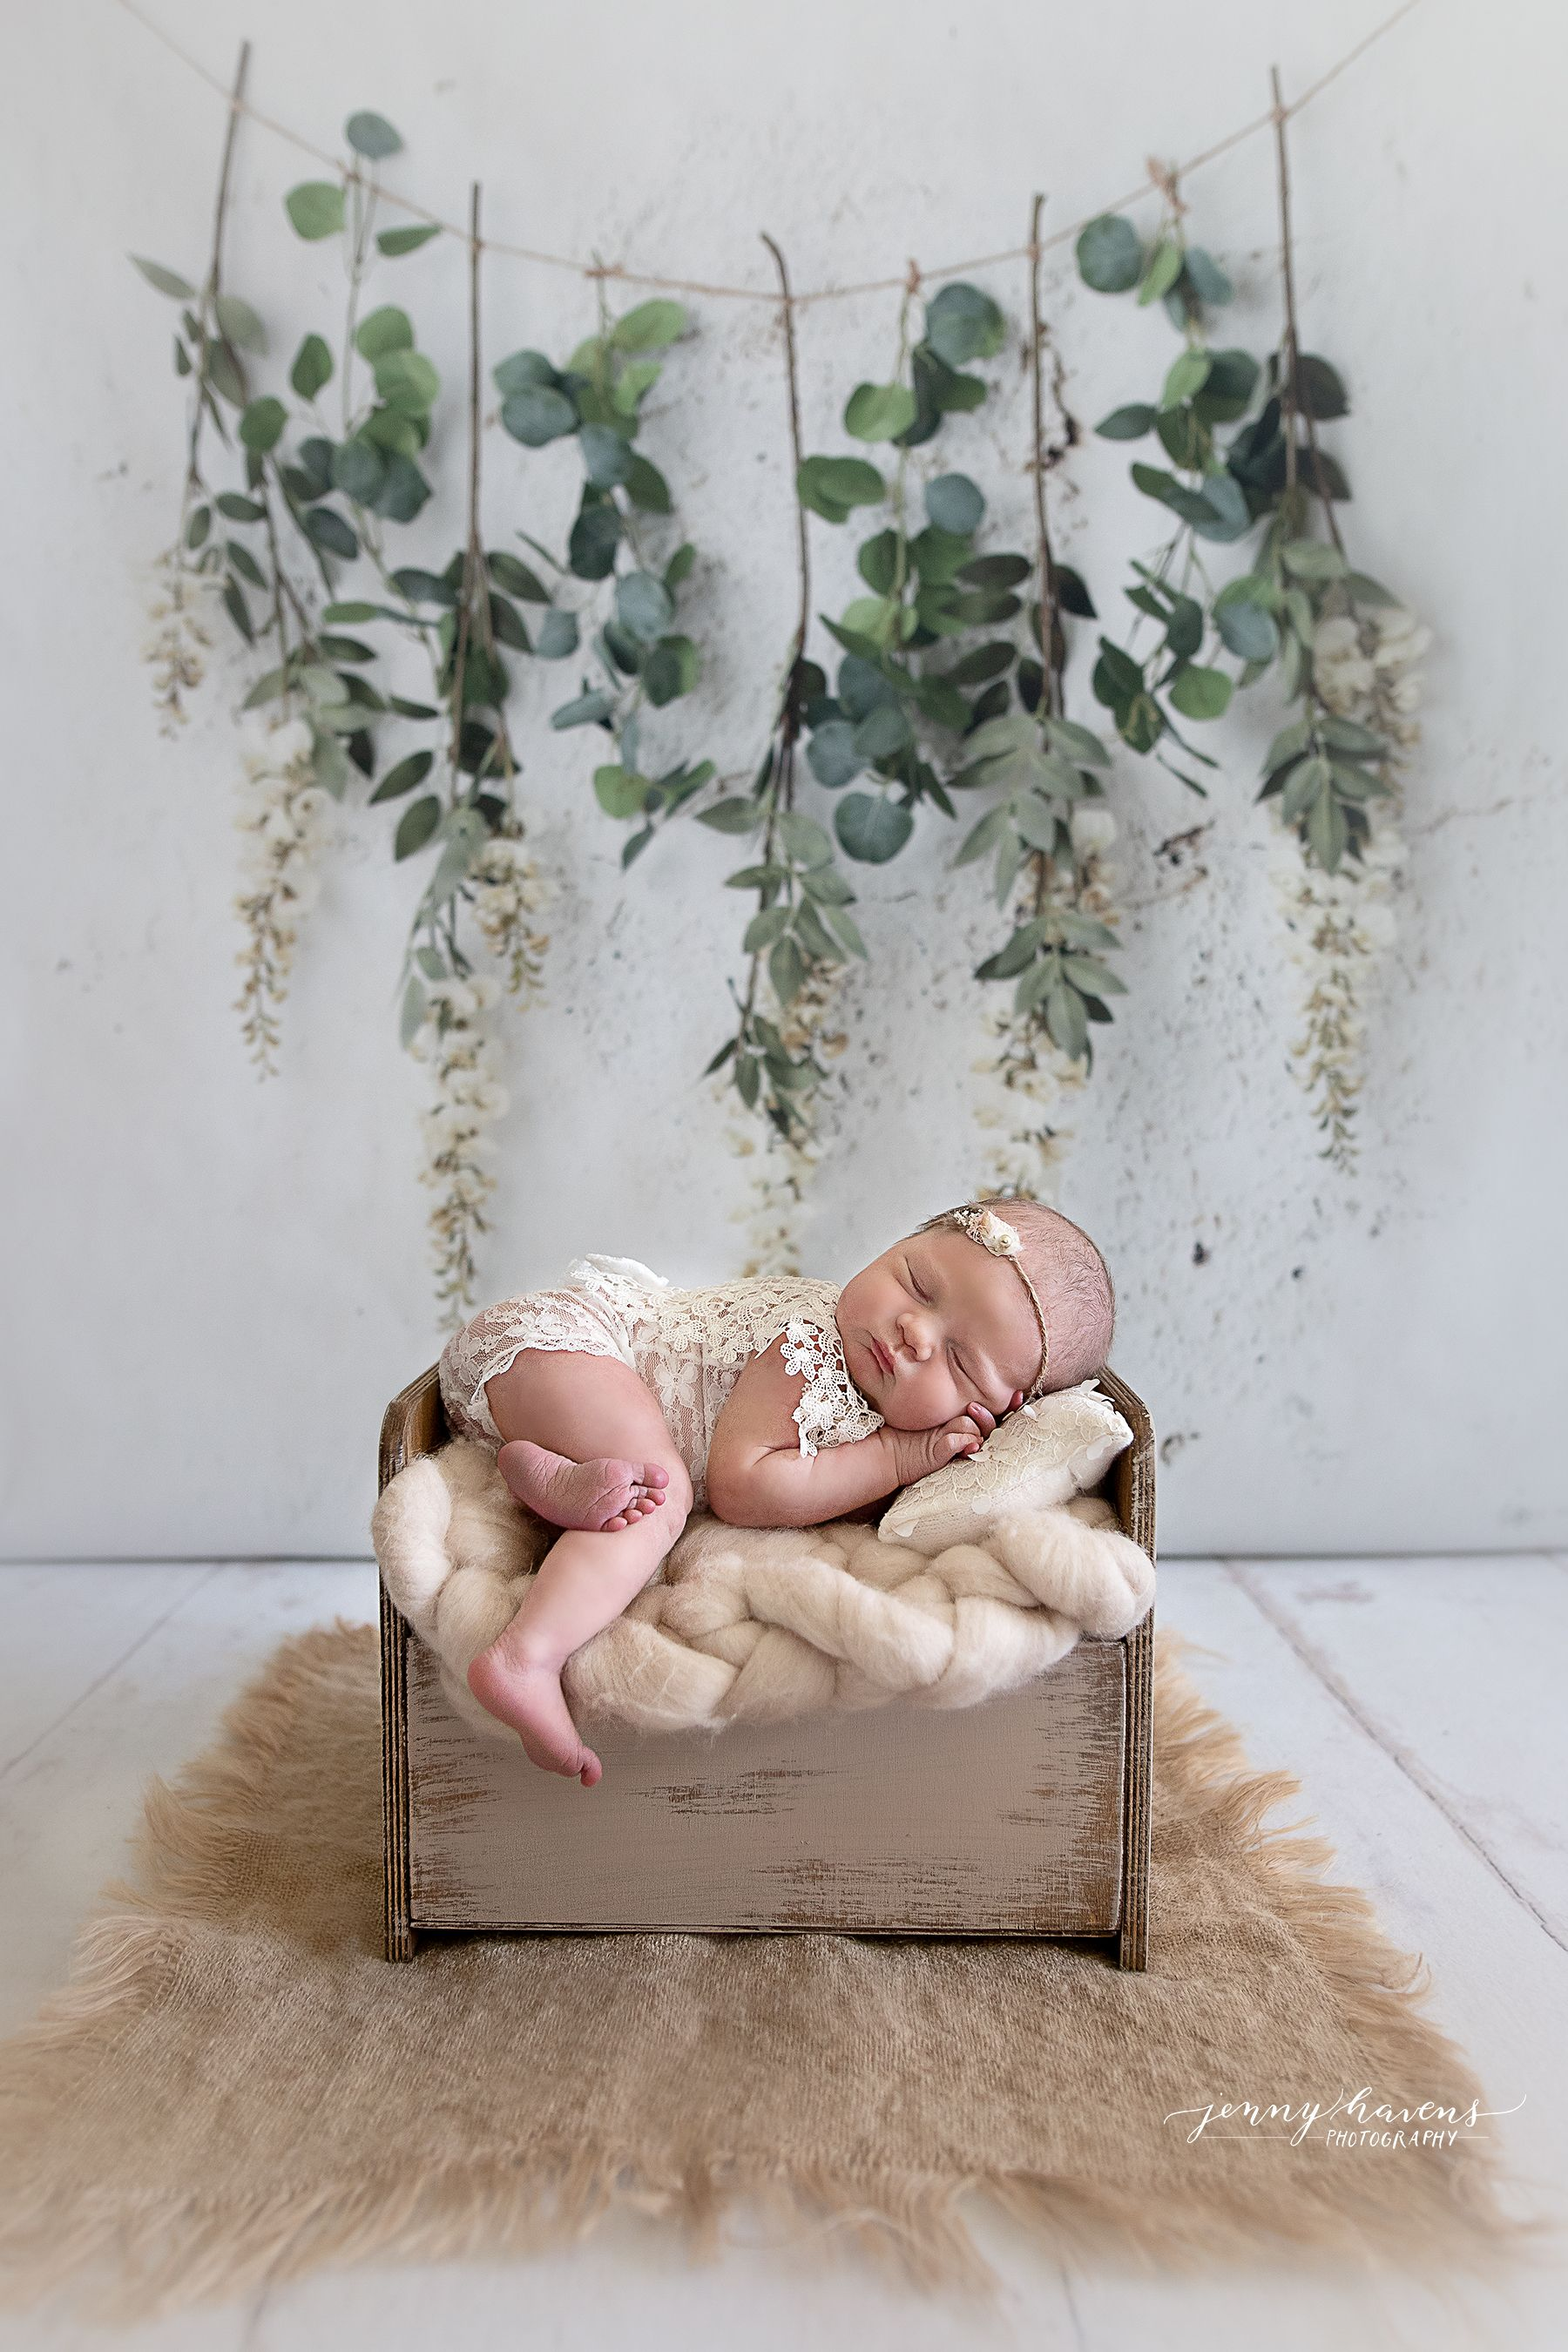 Jenny Havens Photography - Newborn Photoshoot styled with props - in home session